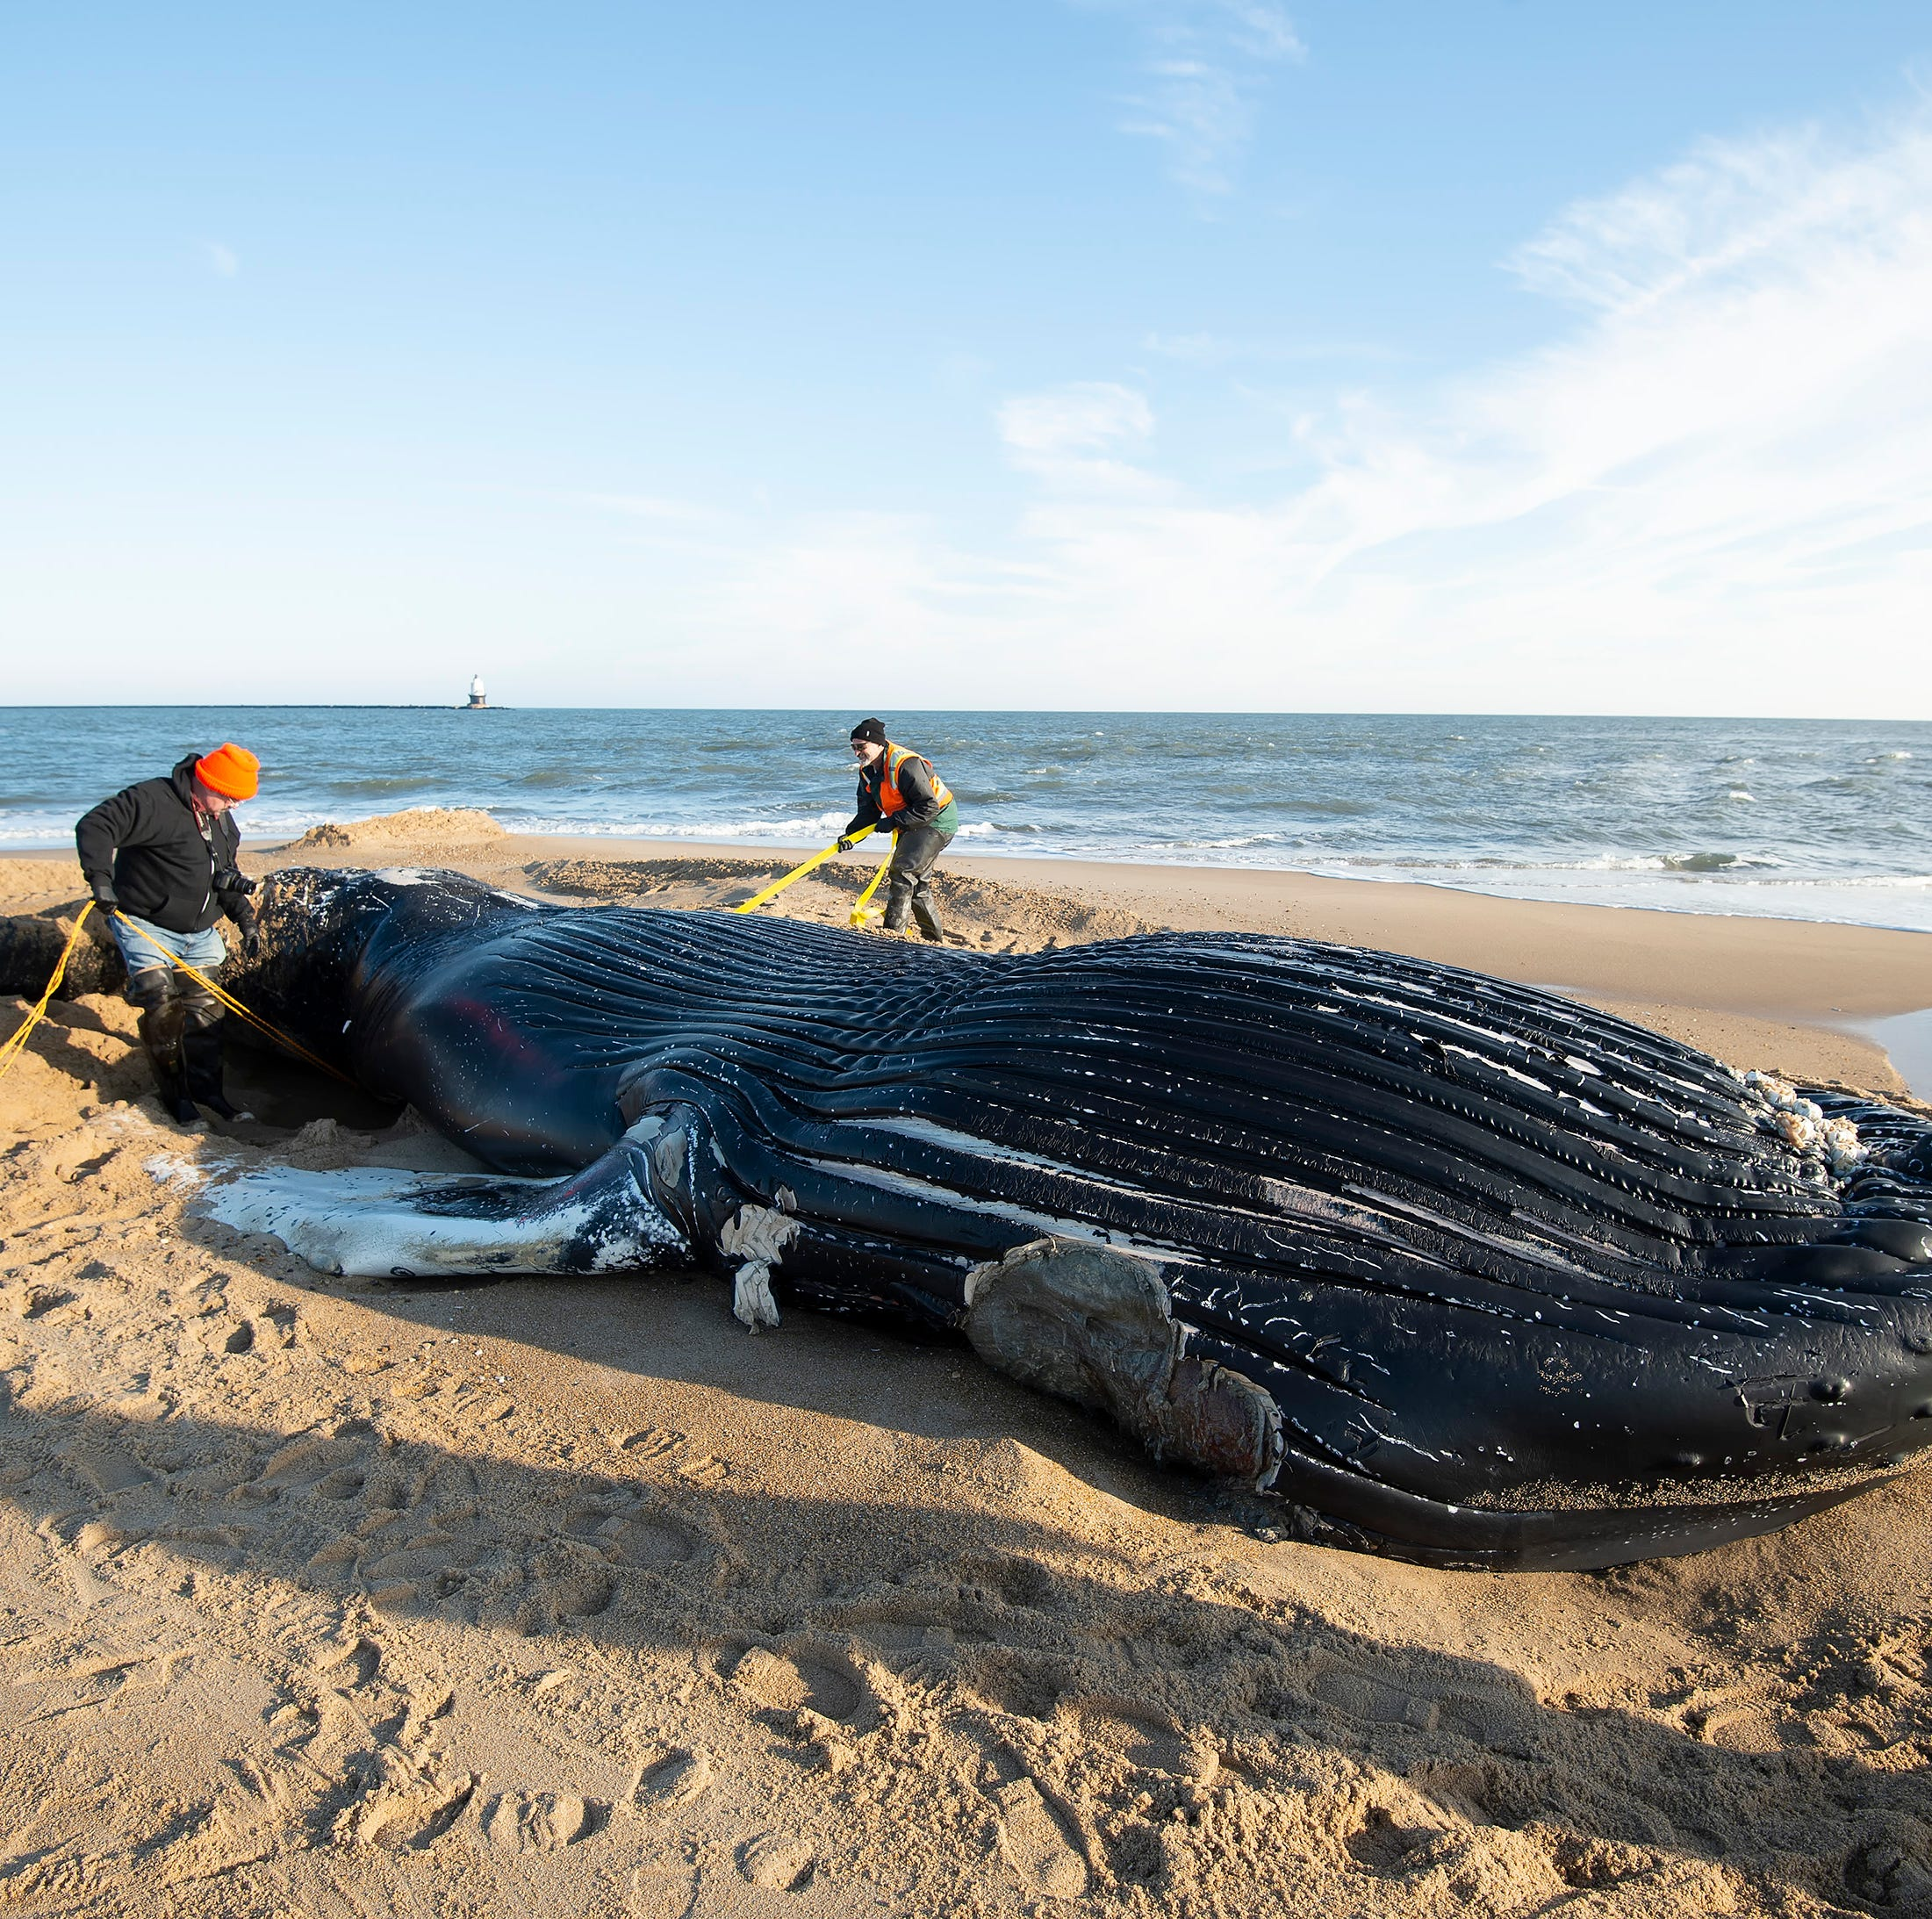 Experts to examine dead humpback whale found on Cape Henlopen beach for cause of death